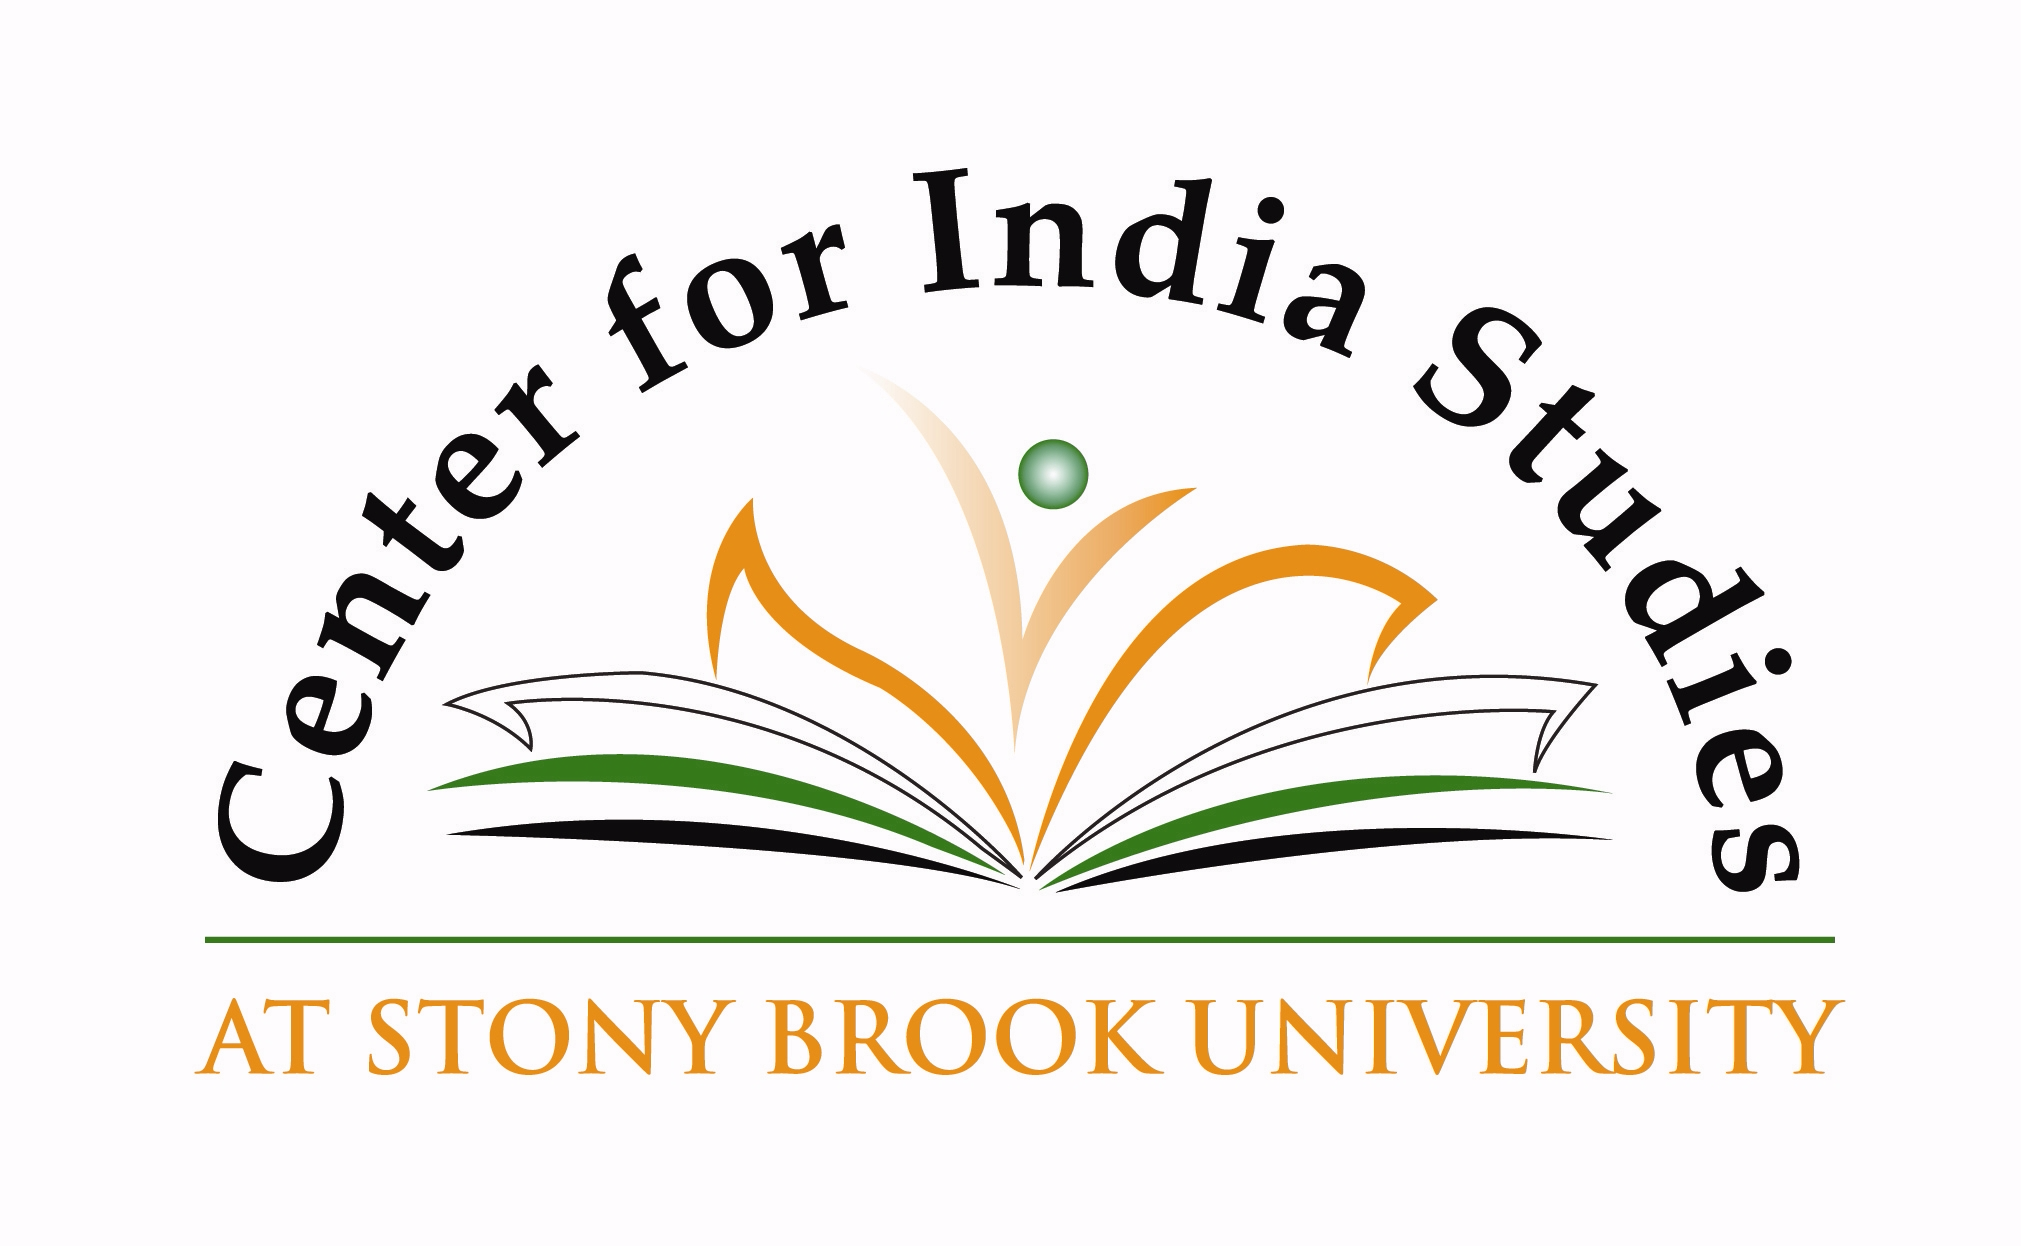 Home | Mattoo Center for India Studies